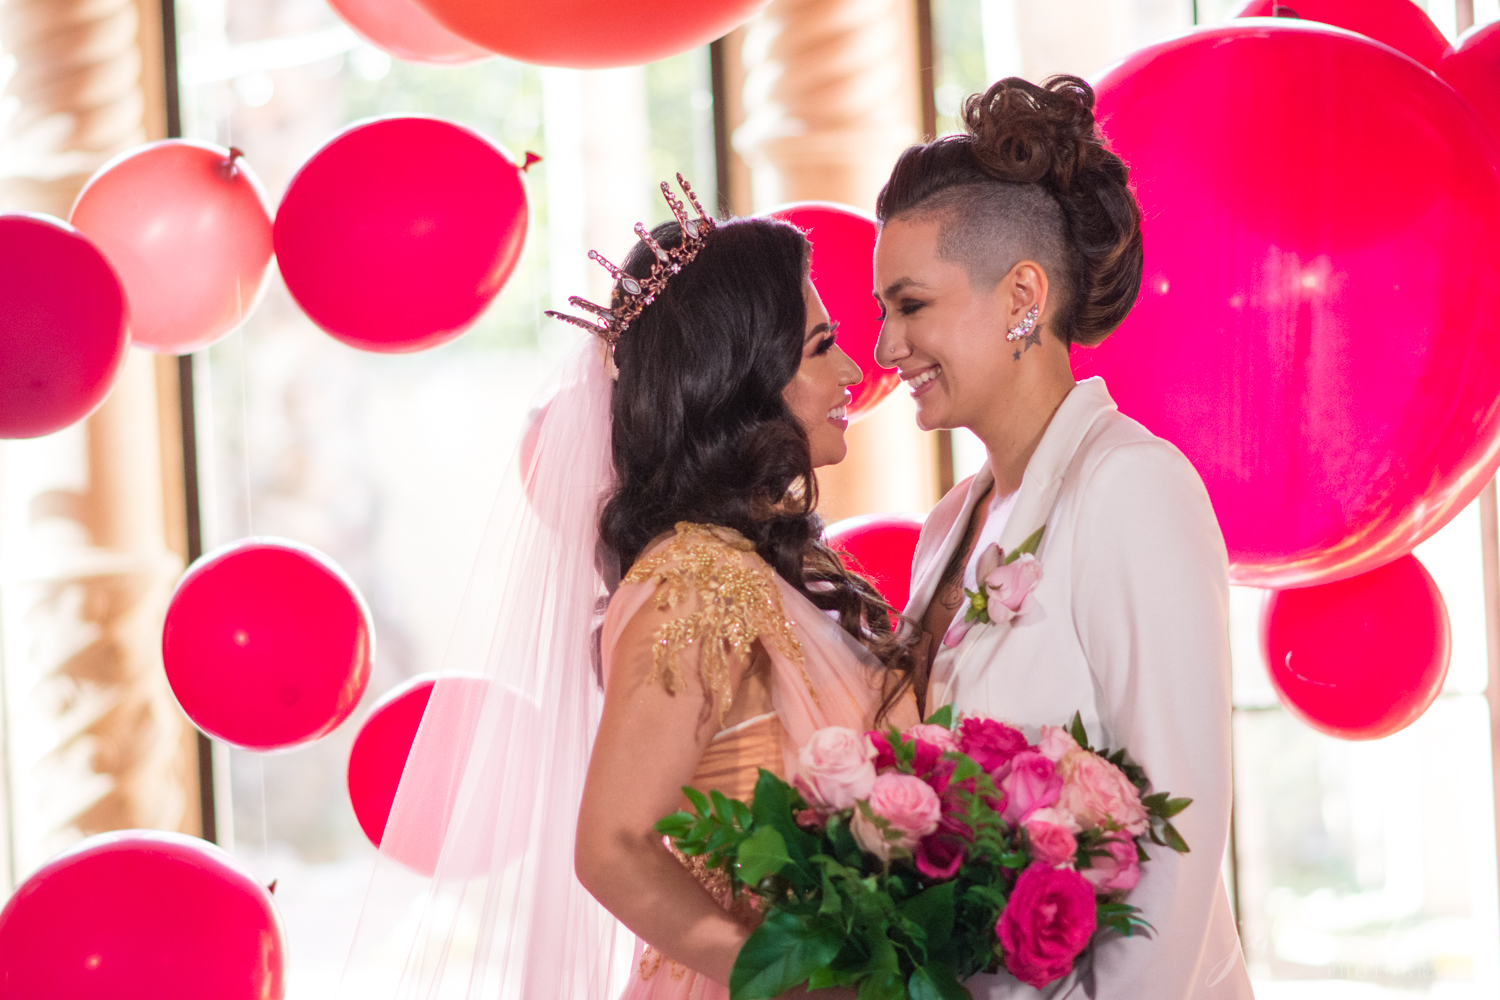 Lesbian Wedding Couple Laughing Surrounded by Red and Pink Balloons